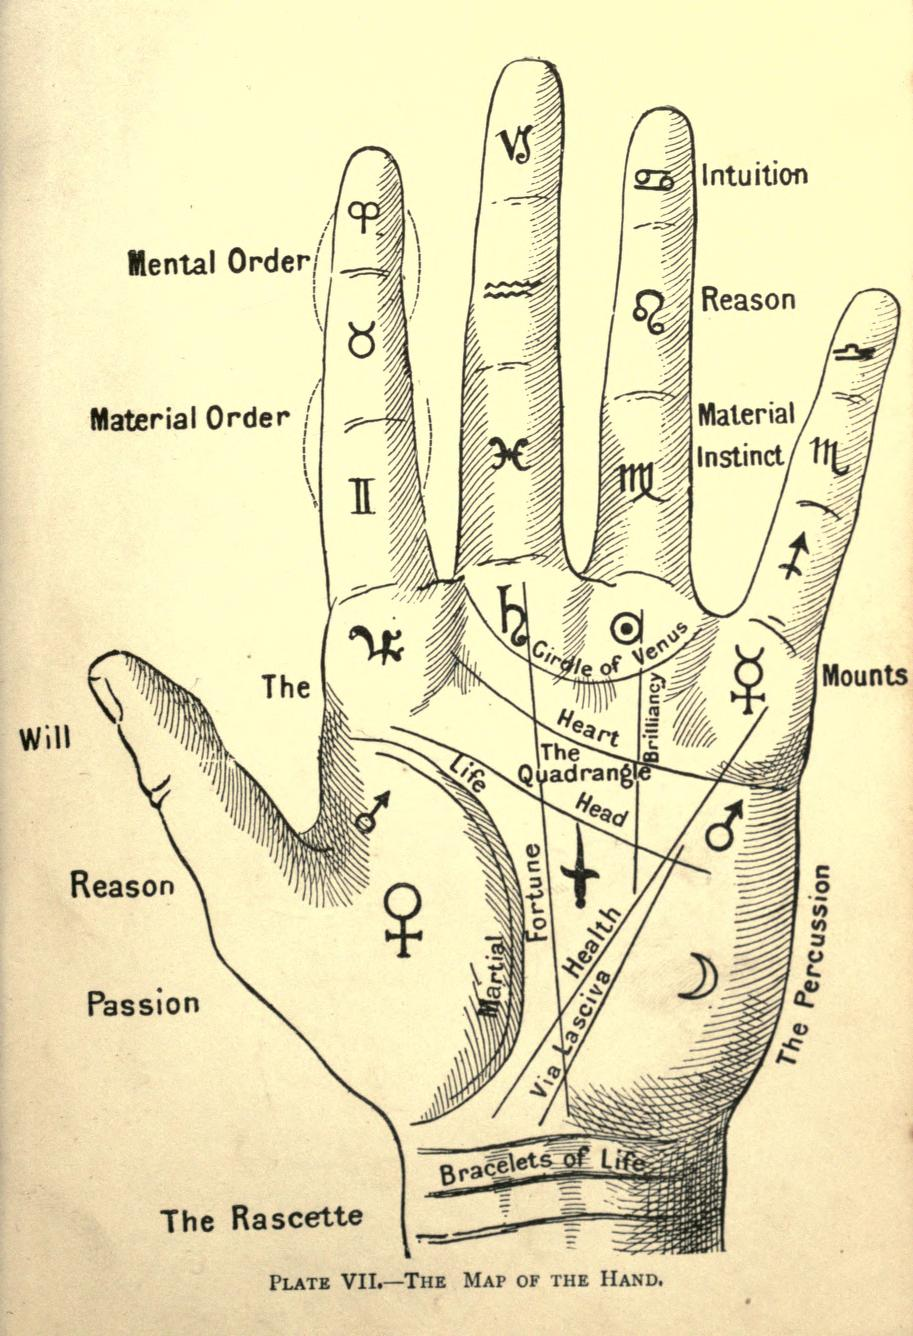 1481219943_vintage_palmistry_illustration_3.jpg